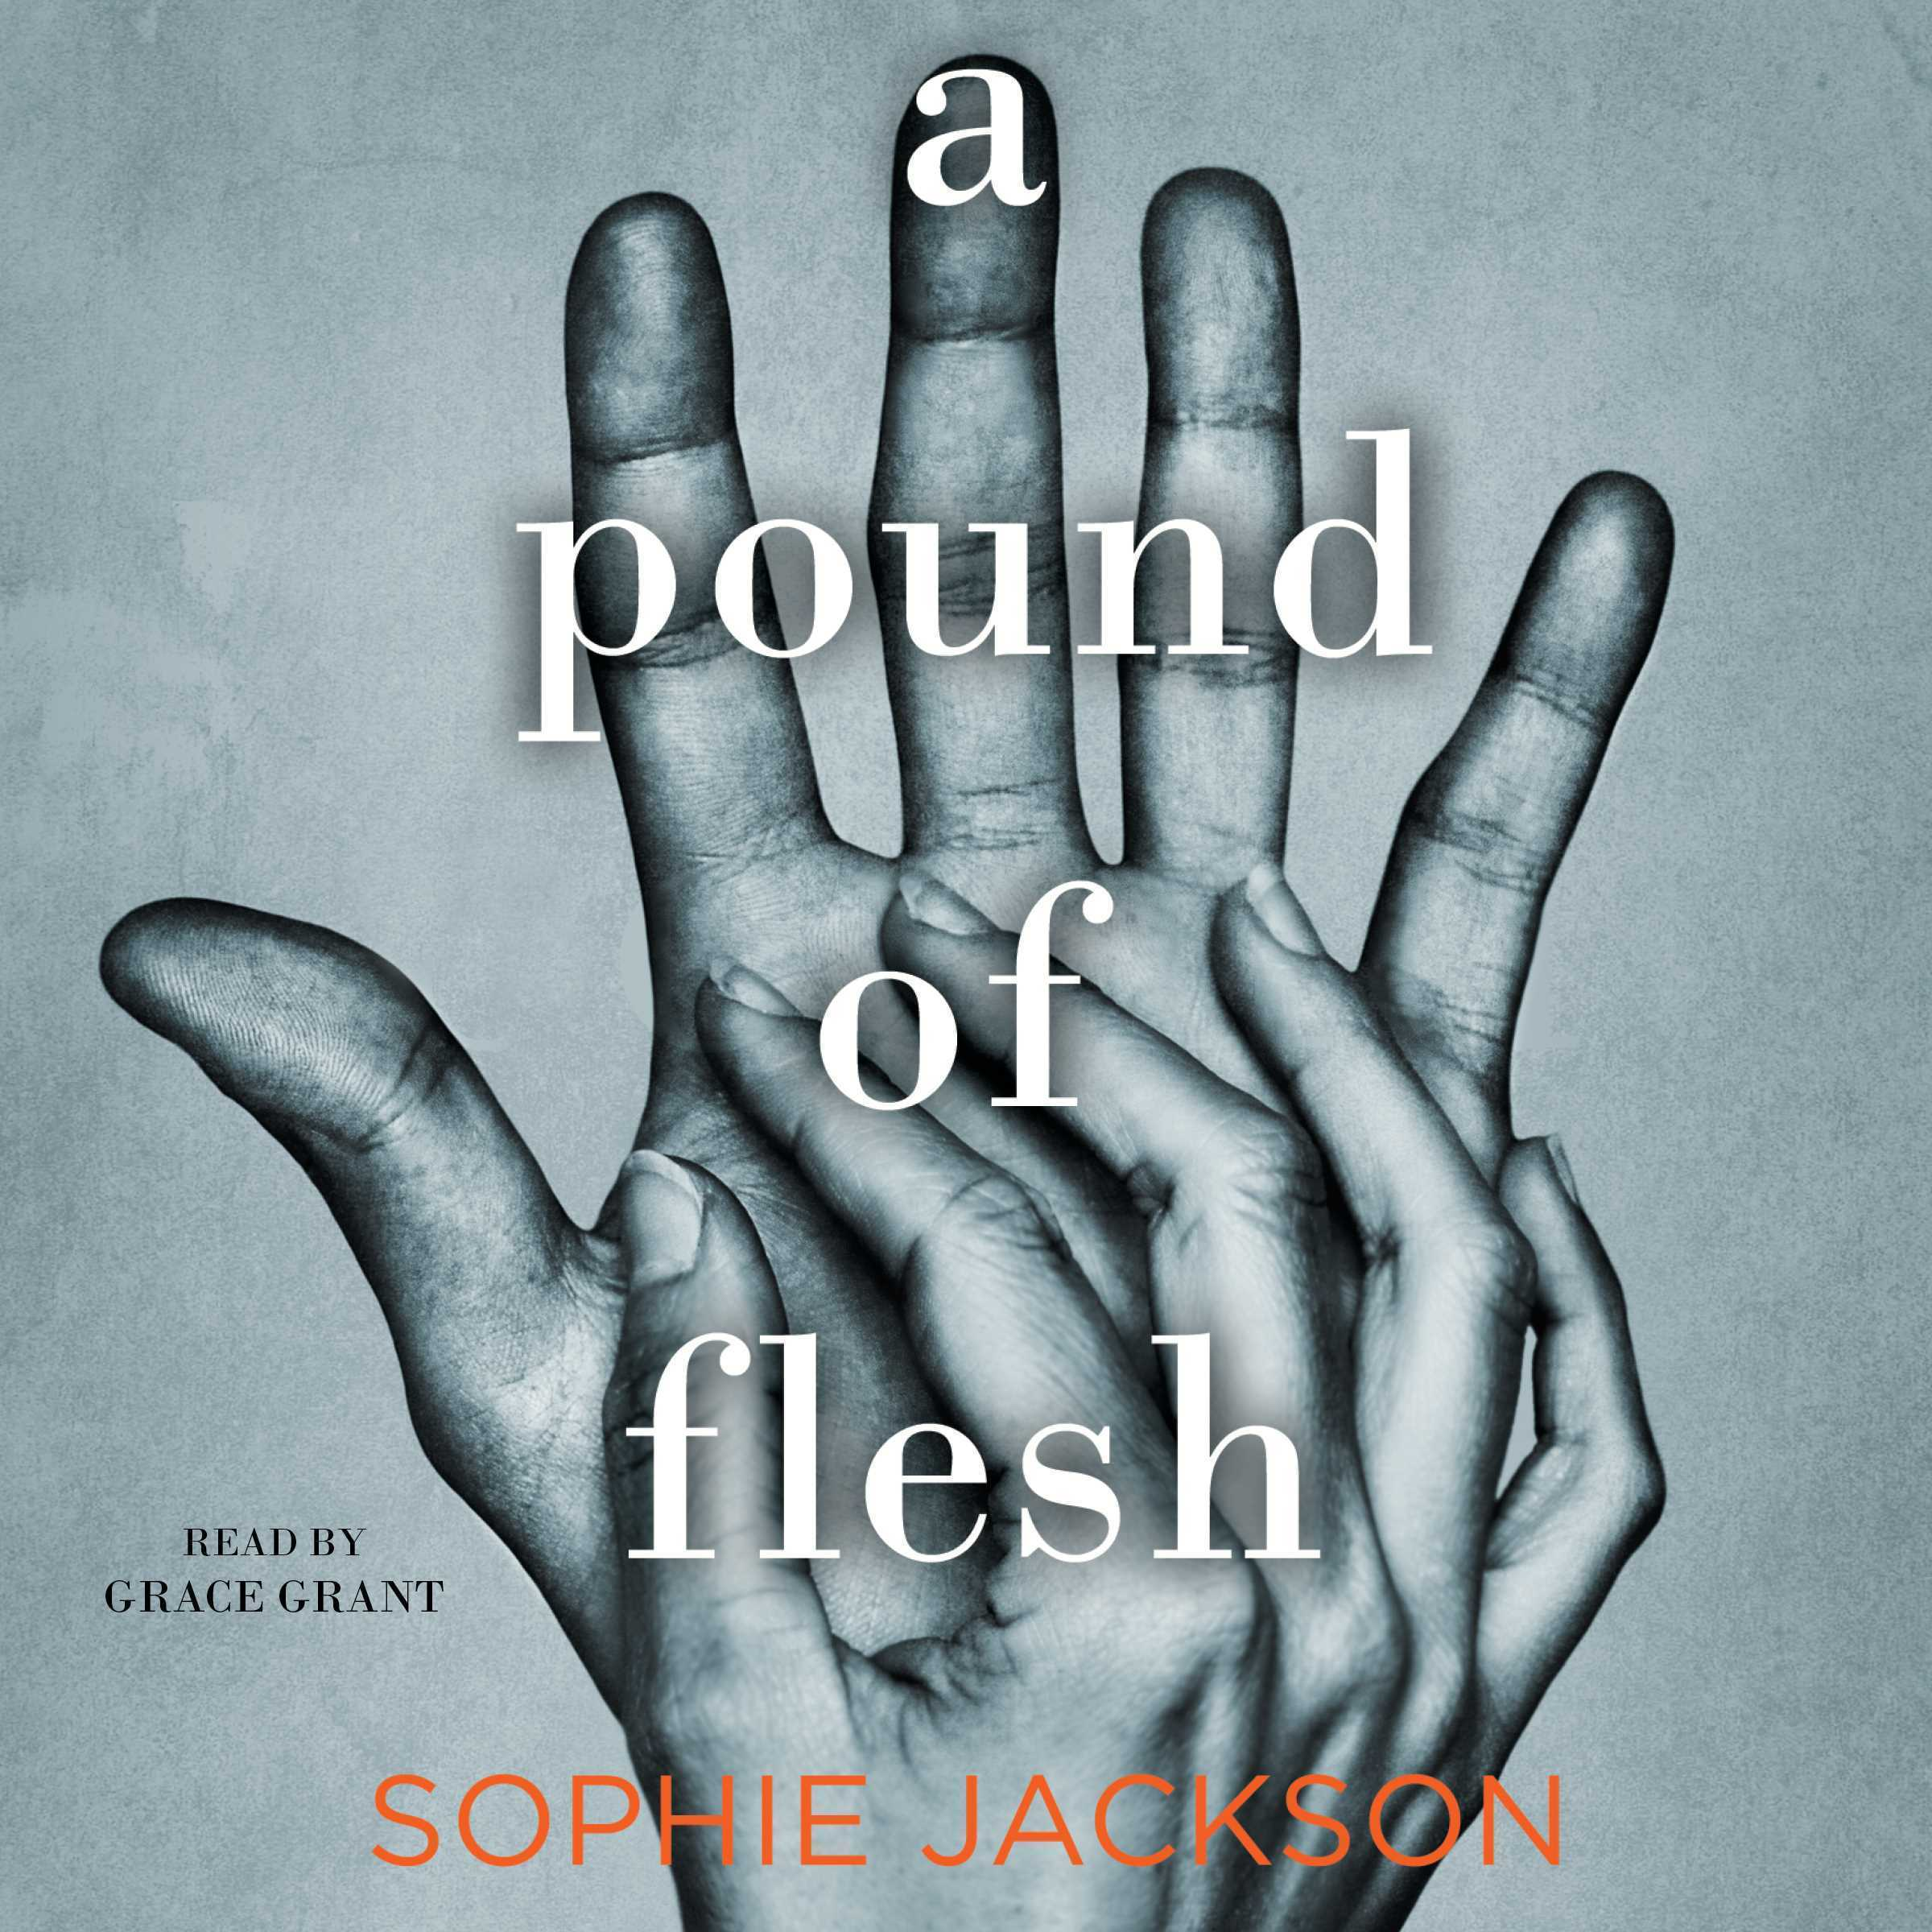 Printable A Pound of Flesh Audiobook Cover Art